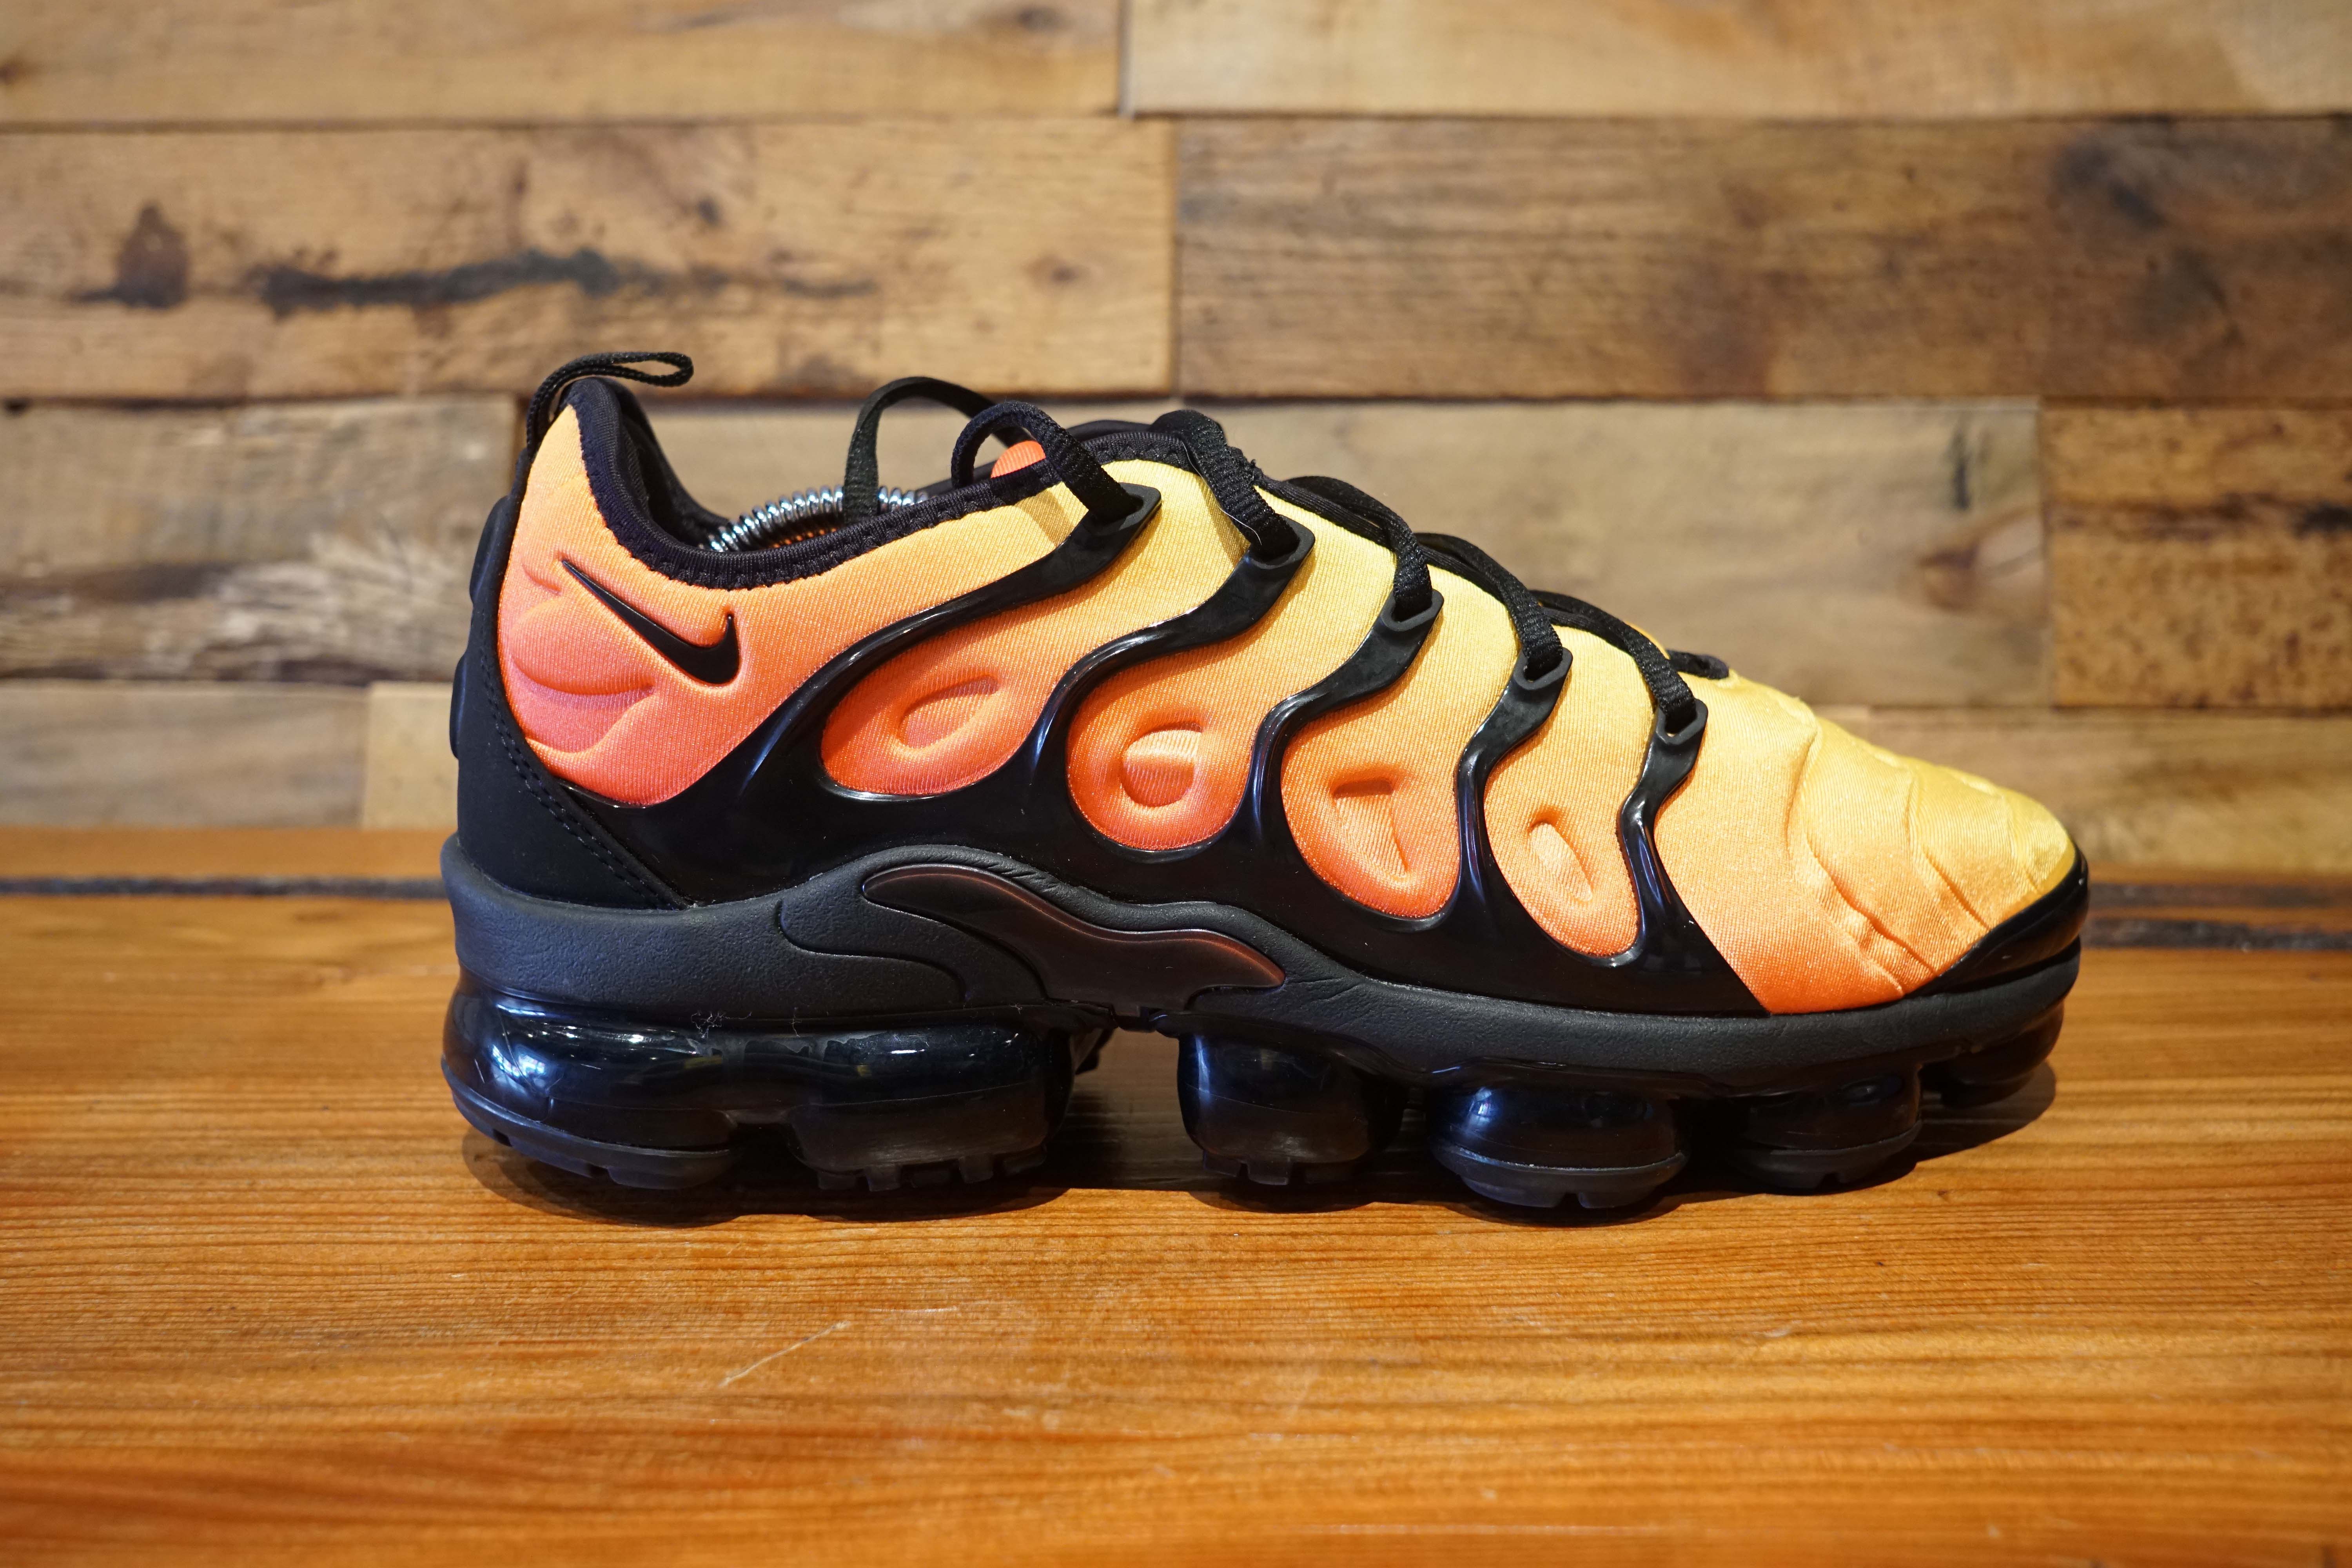 e4fb5018d4a Air Vapormax Plus 2018 Used Replacement Box Size 9.5 (3173-210 ...